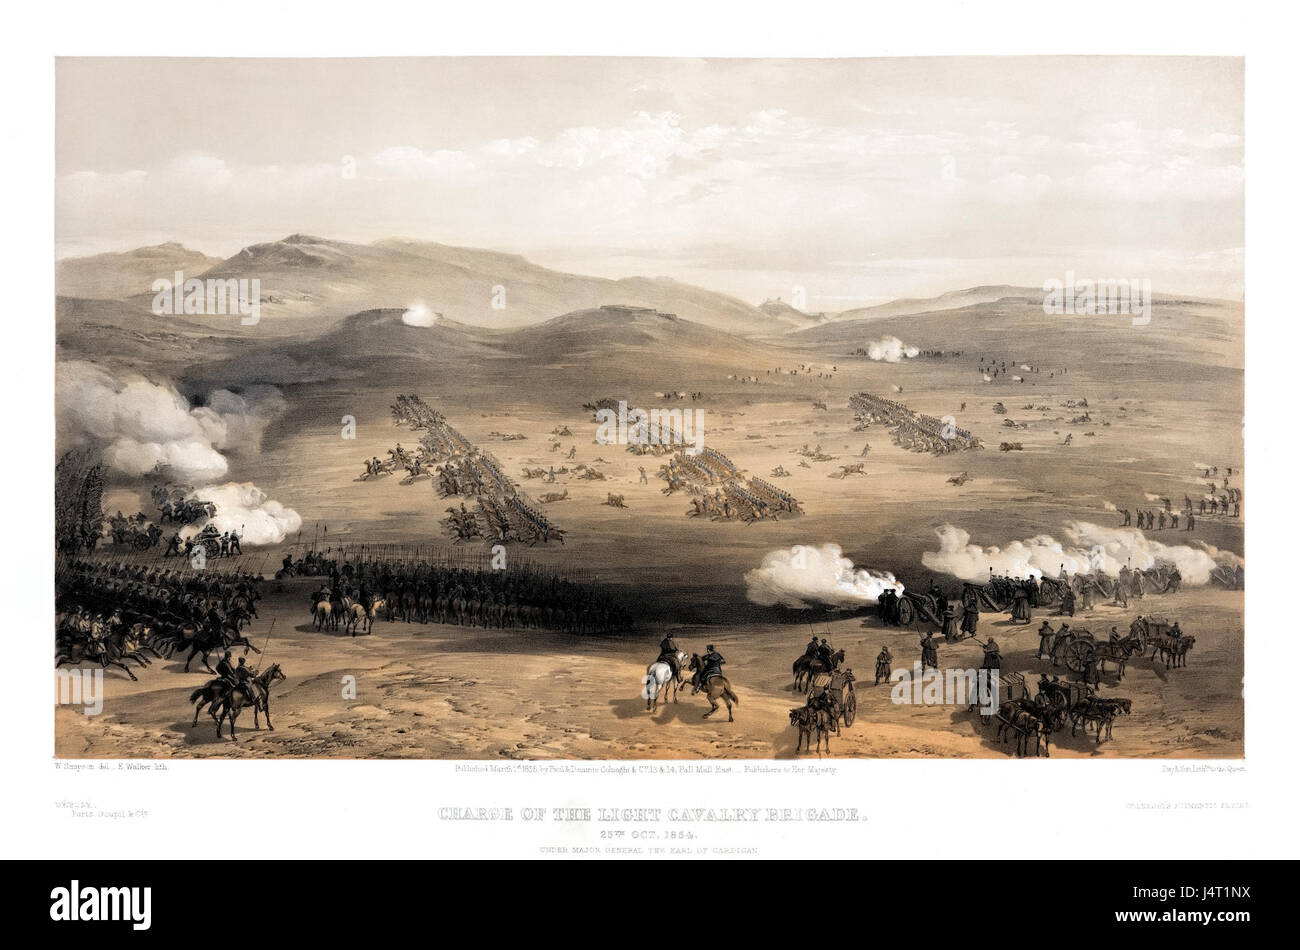 William Simpson   Charge of the light cavalry brigade, 25th Oct. 1854, under Major General the Earl of Cardigan - Stock Image